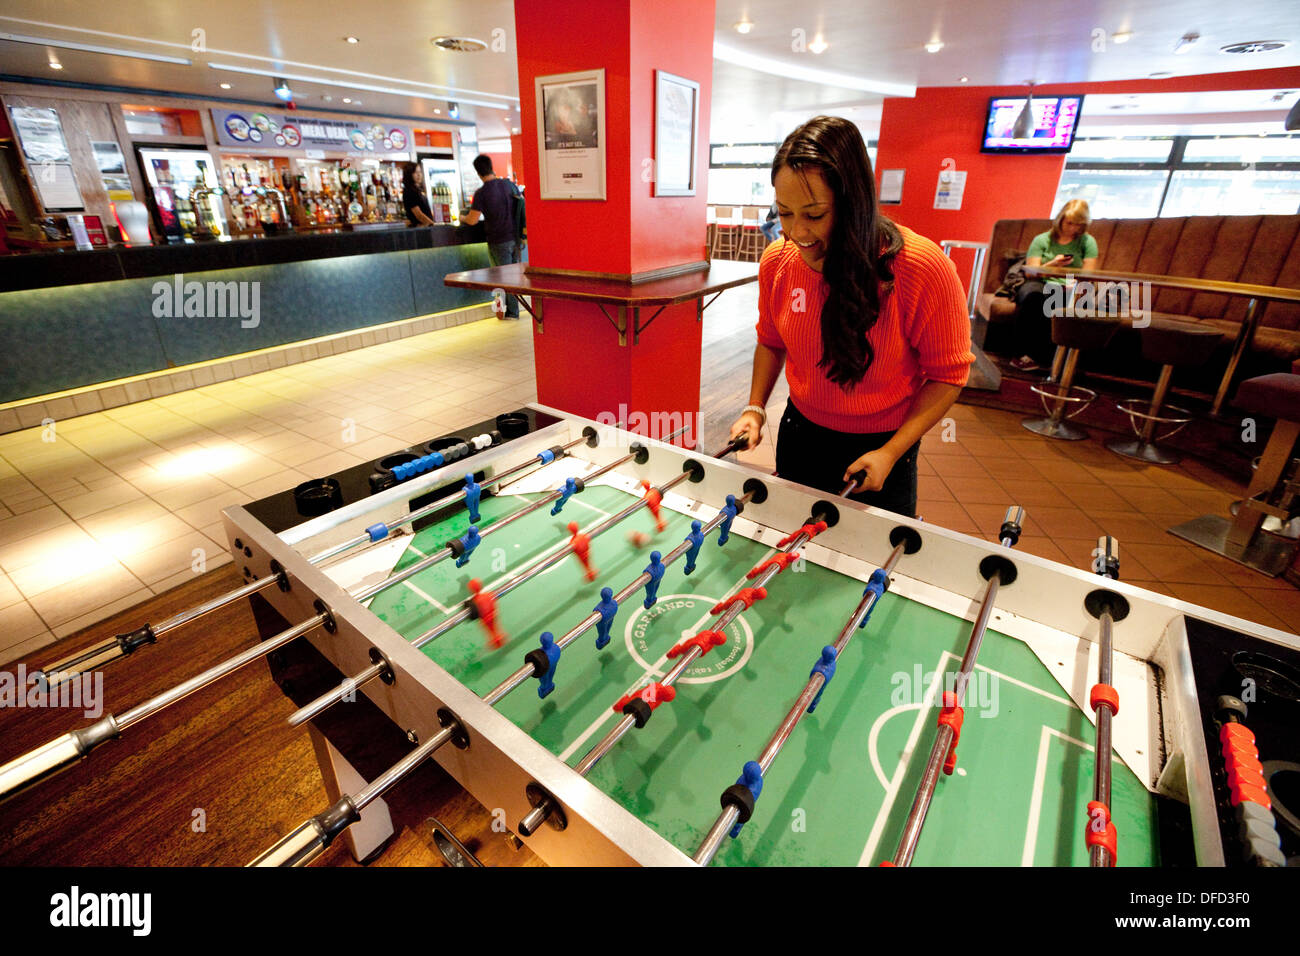 A young woman playing table football, the student union bar, UEA, University of East Anglia, Norwich, Norfolk UK - Stock Image